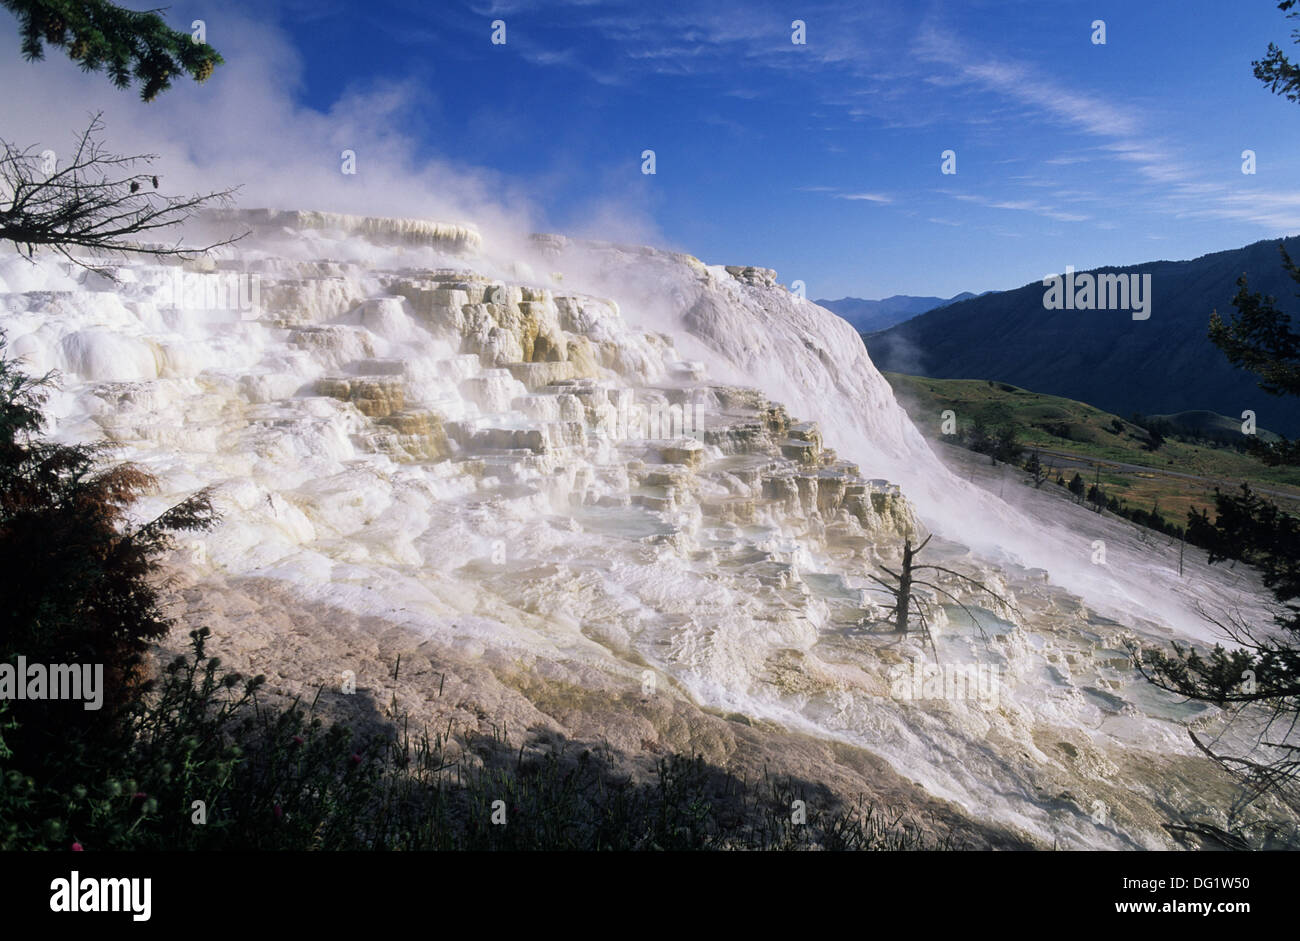 Elk265-1890 Wyoming, Yellowstone National Park, Mammoth Hot Springs, Canary Spring - Stock Image